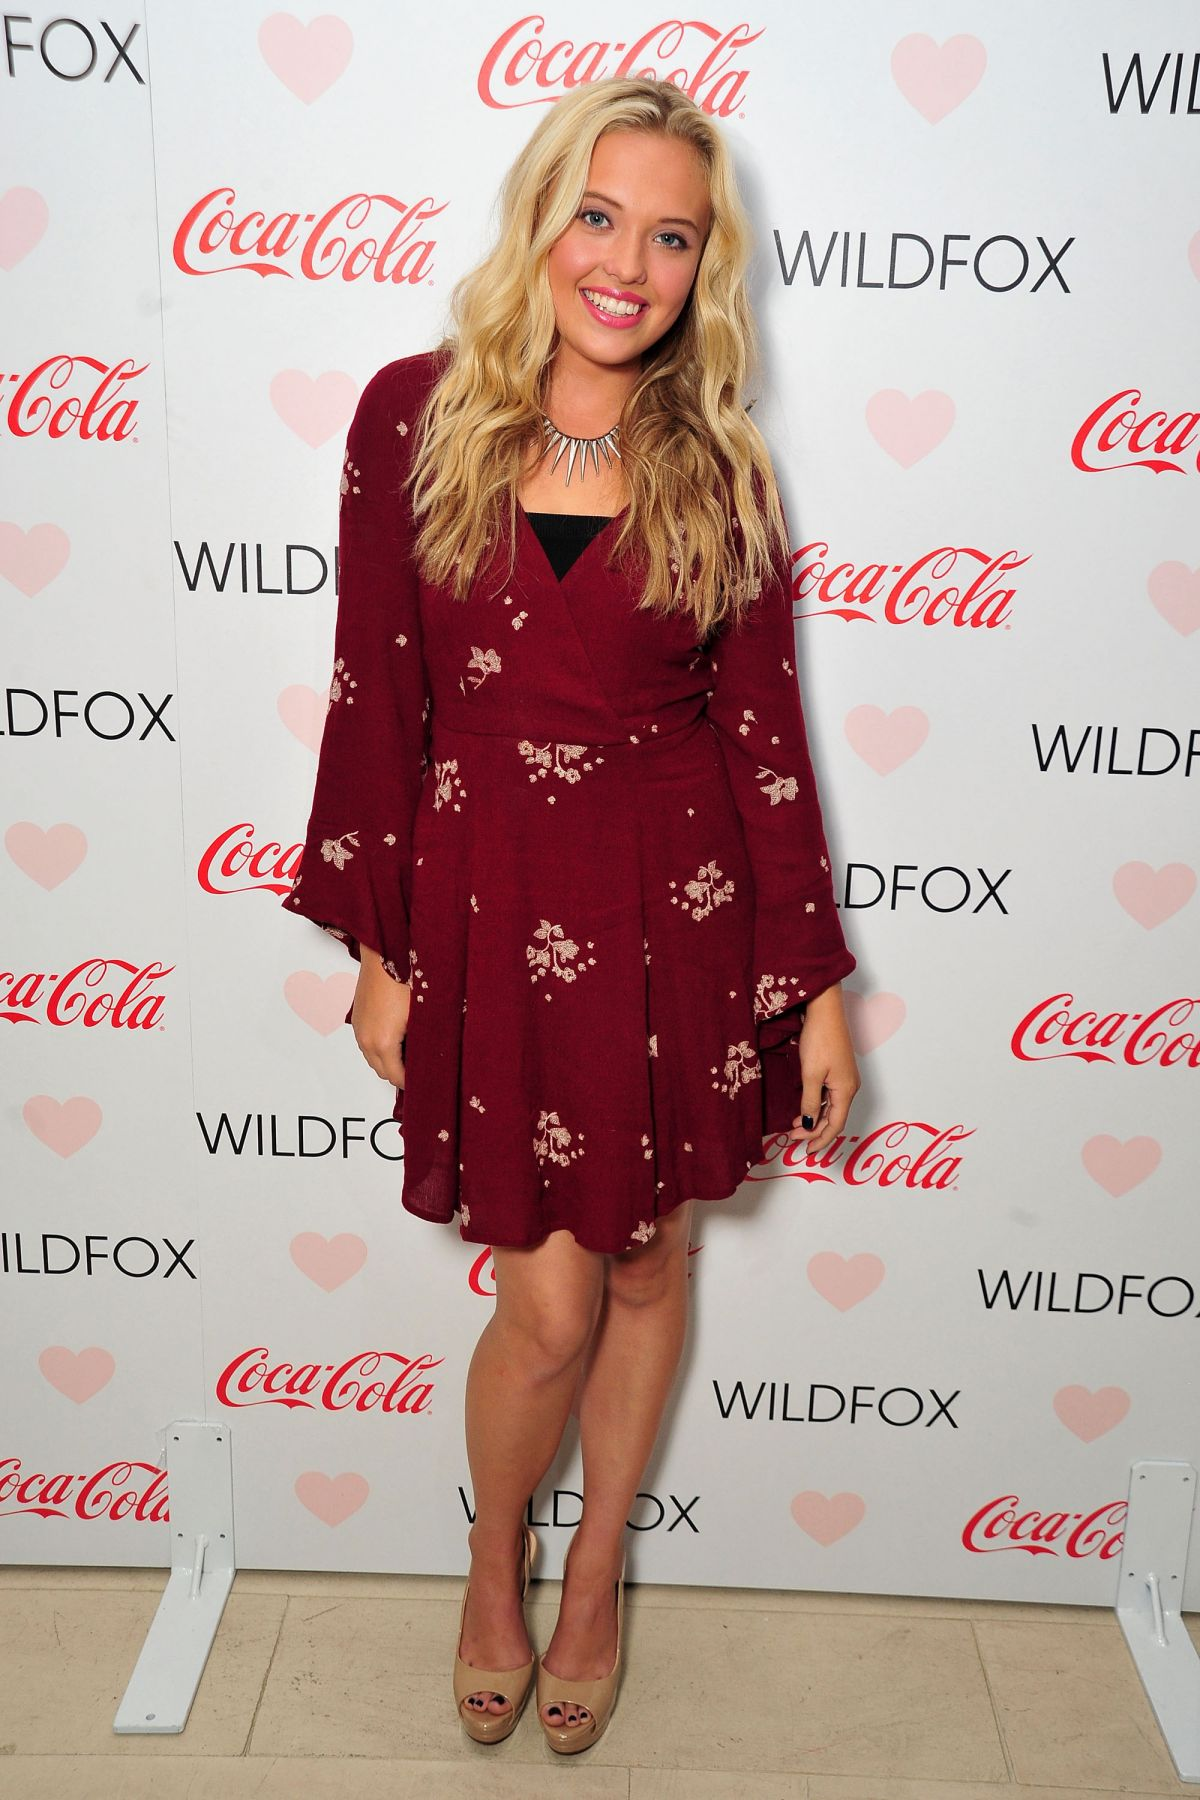 LAUREN TAYLOR at Wildfox Loves Coca-cola Capsule Collection Launch Party in West Hollywood 10/22/2015